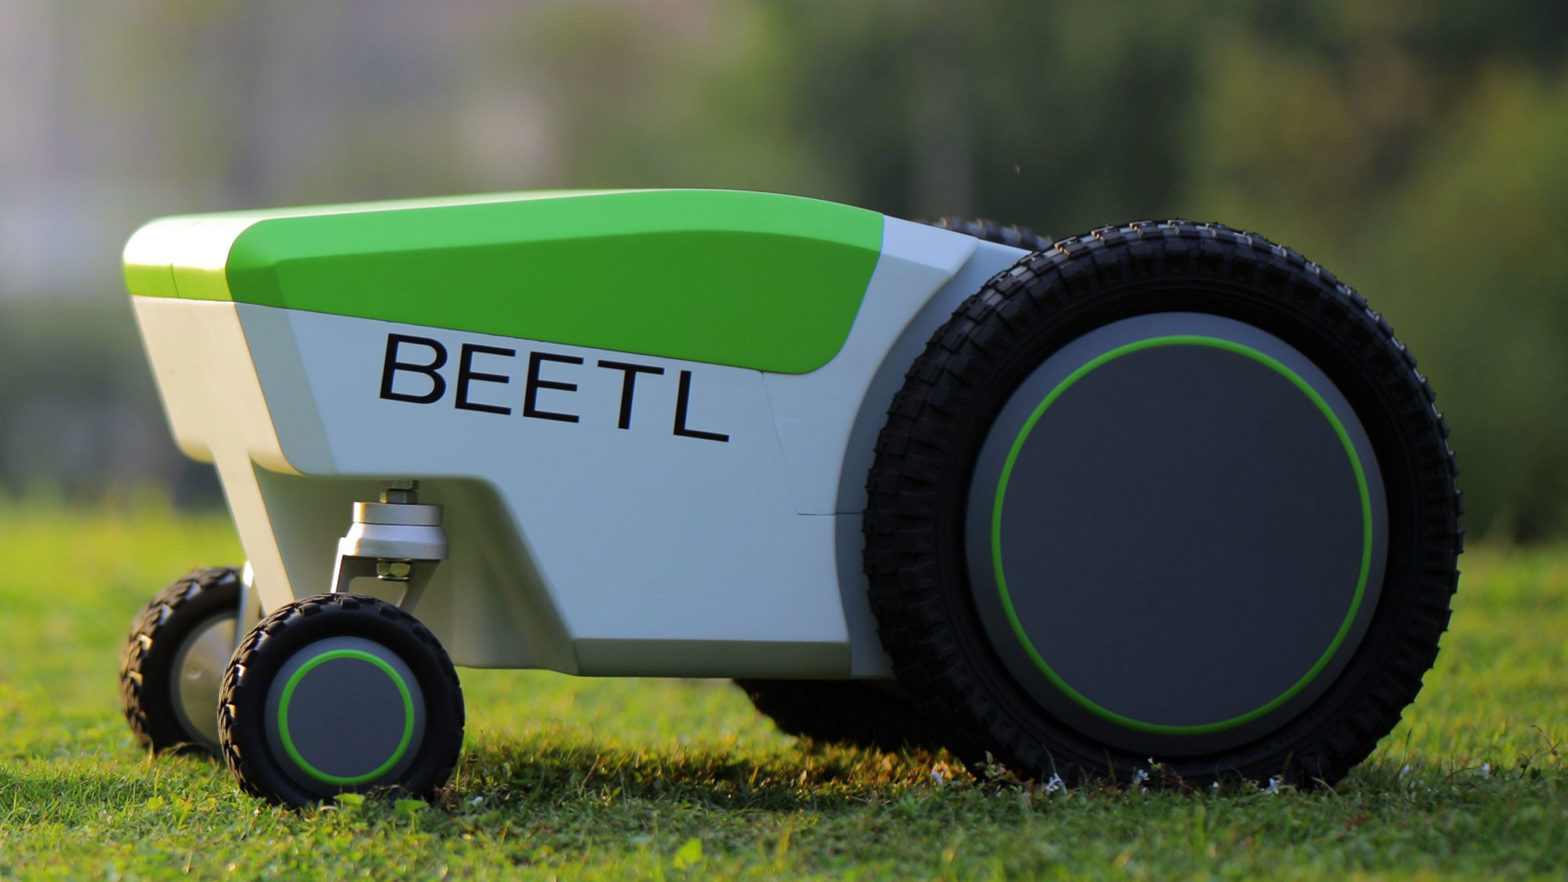 Beetl Robotic Dog Poop-Scooper